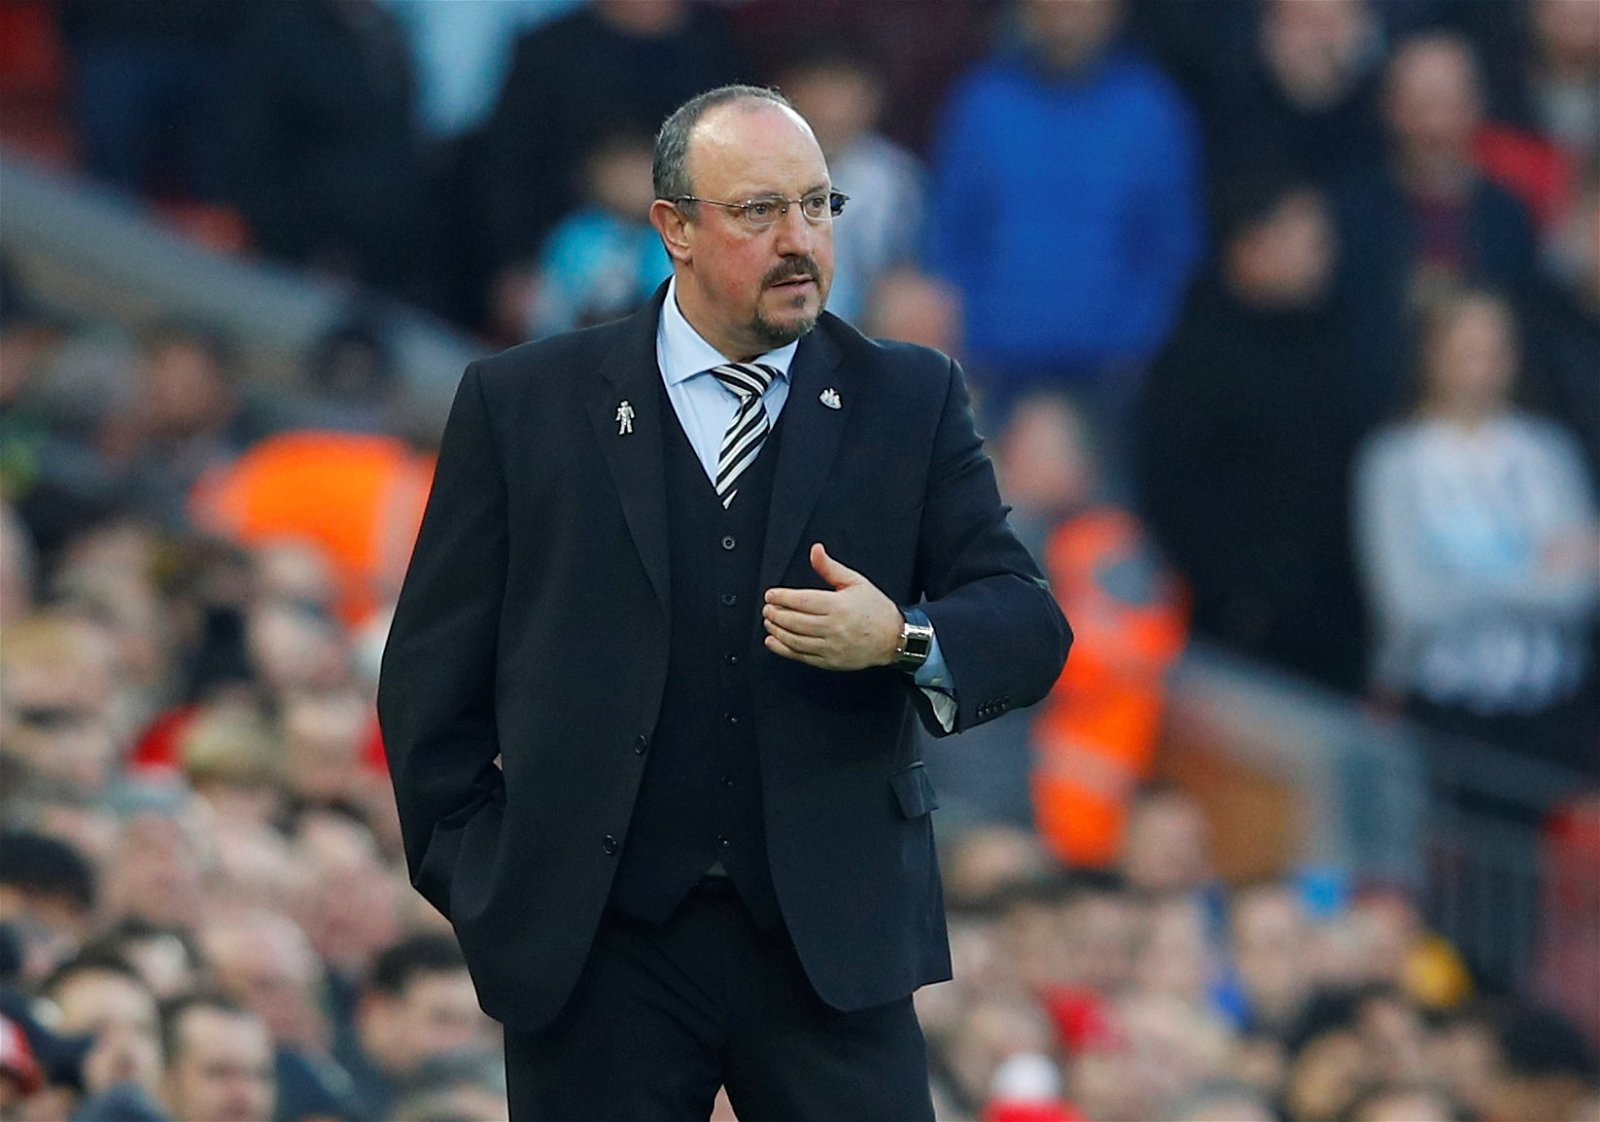 Rafael Benitez looks on at Anfield